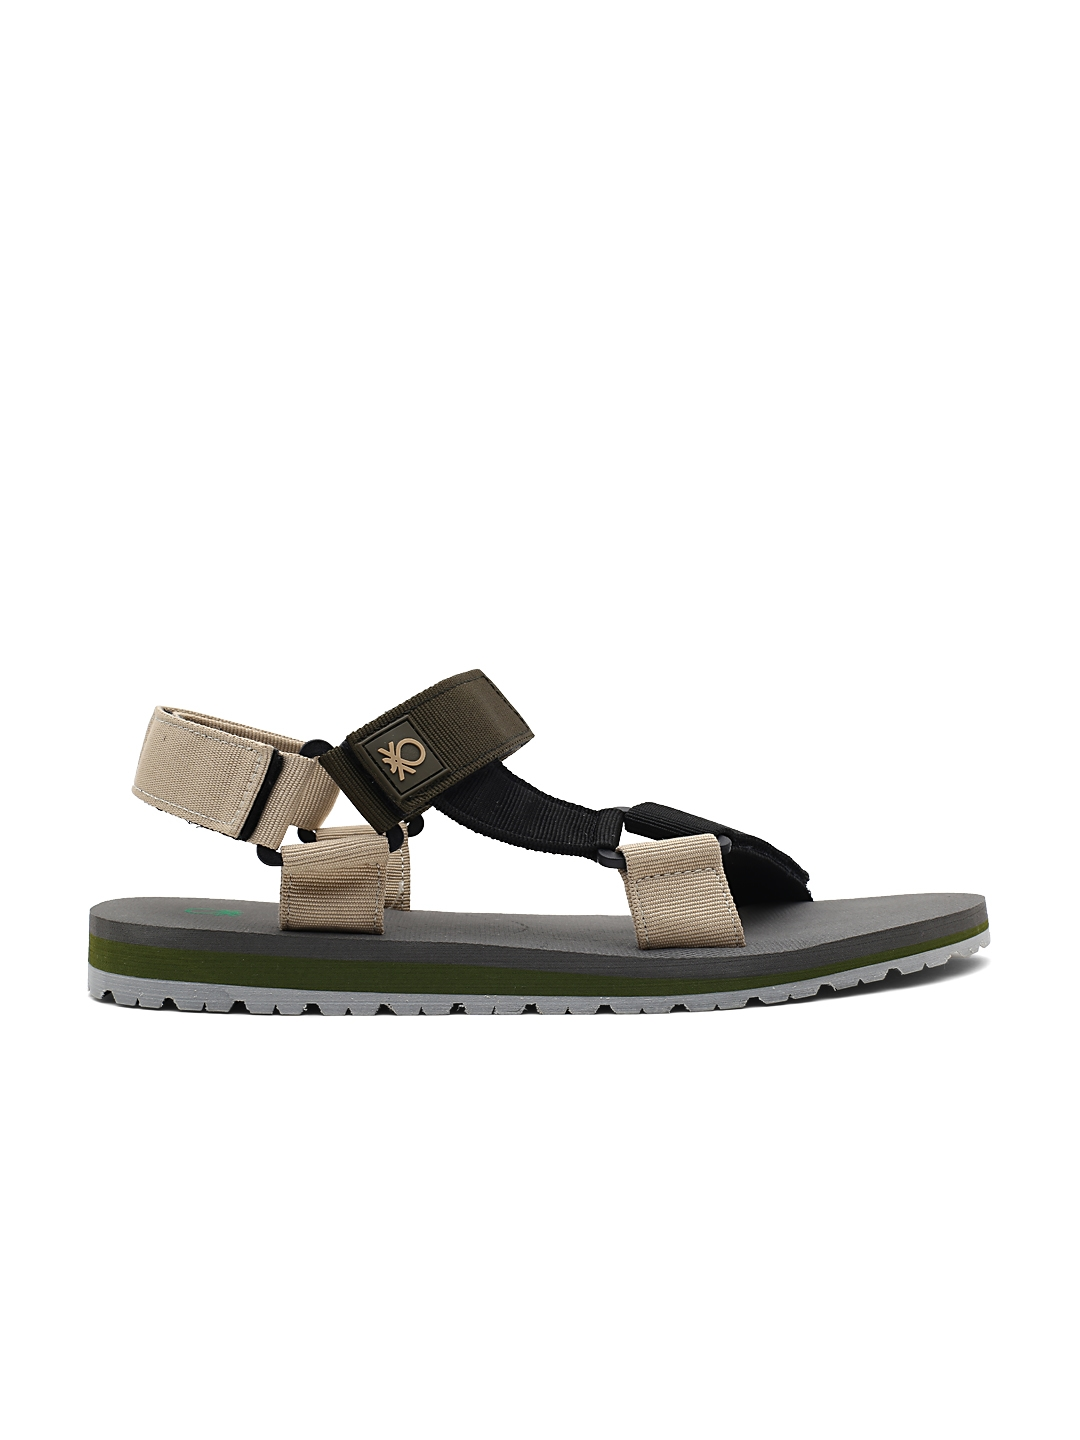 Buy United Colors Of Benetton Men Black   Olive Green Sports Sandals ... 0231ba0393a3